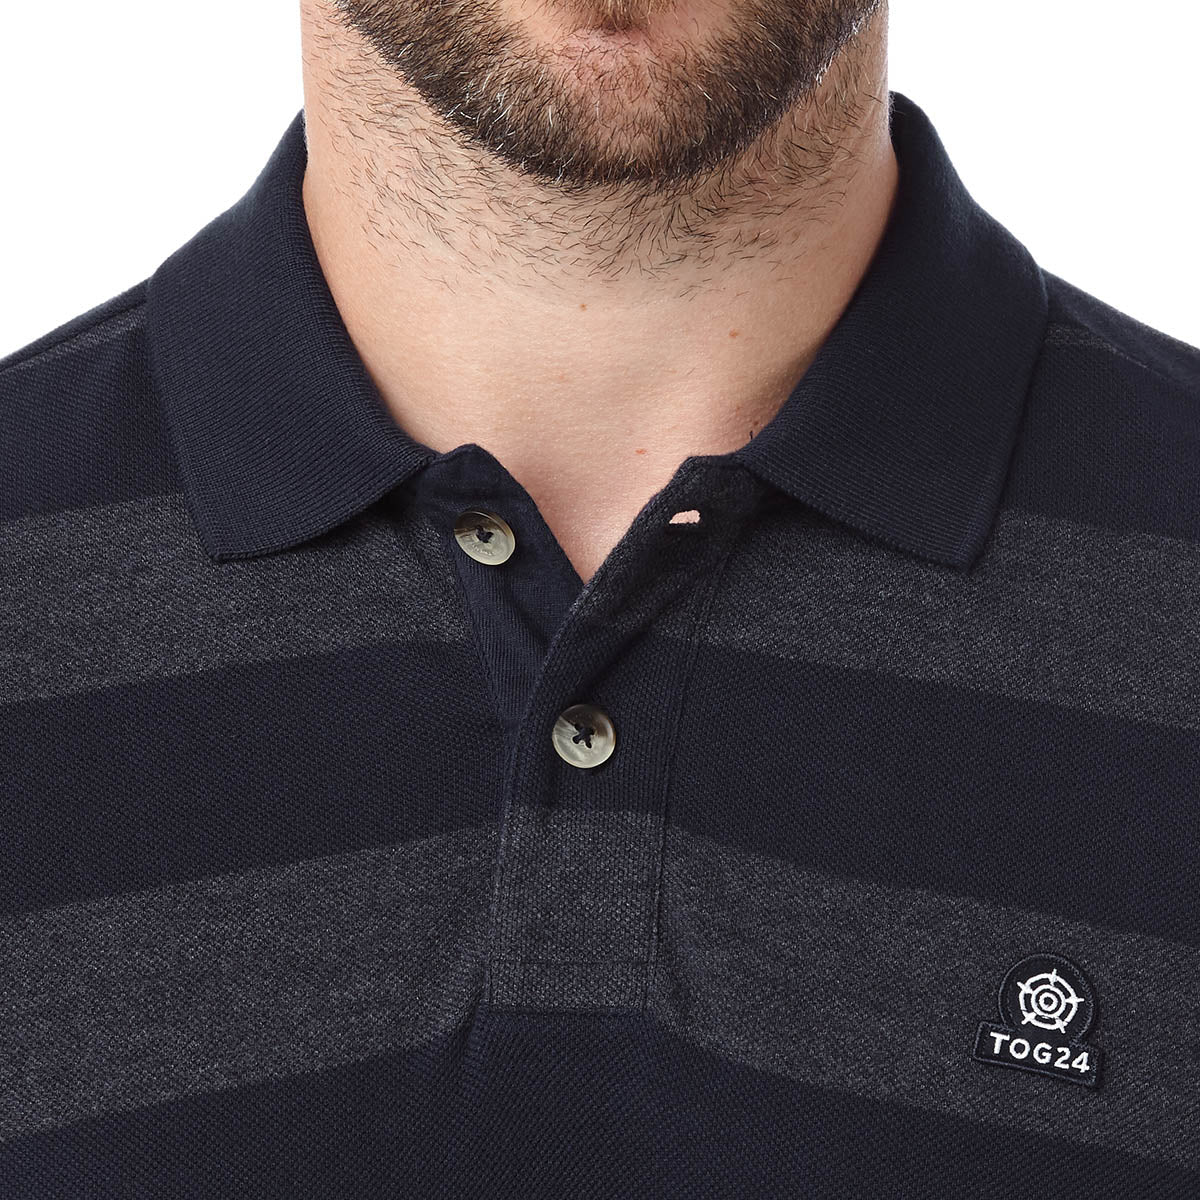 Fordon Mens Pique Polo Shirt - Navy image 4